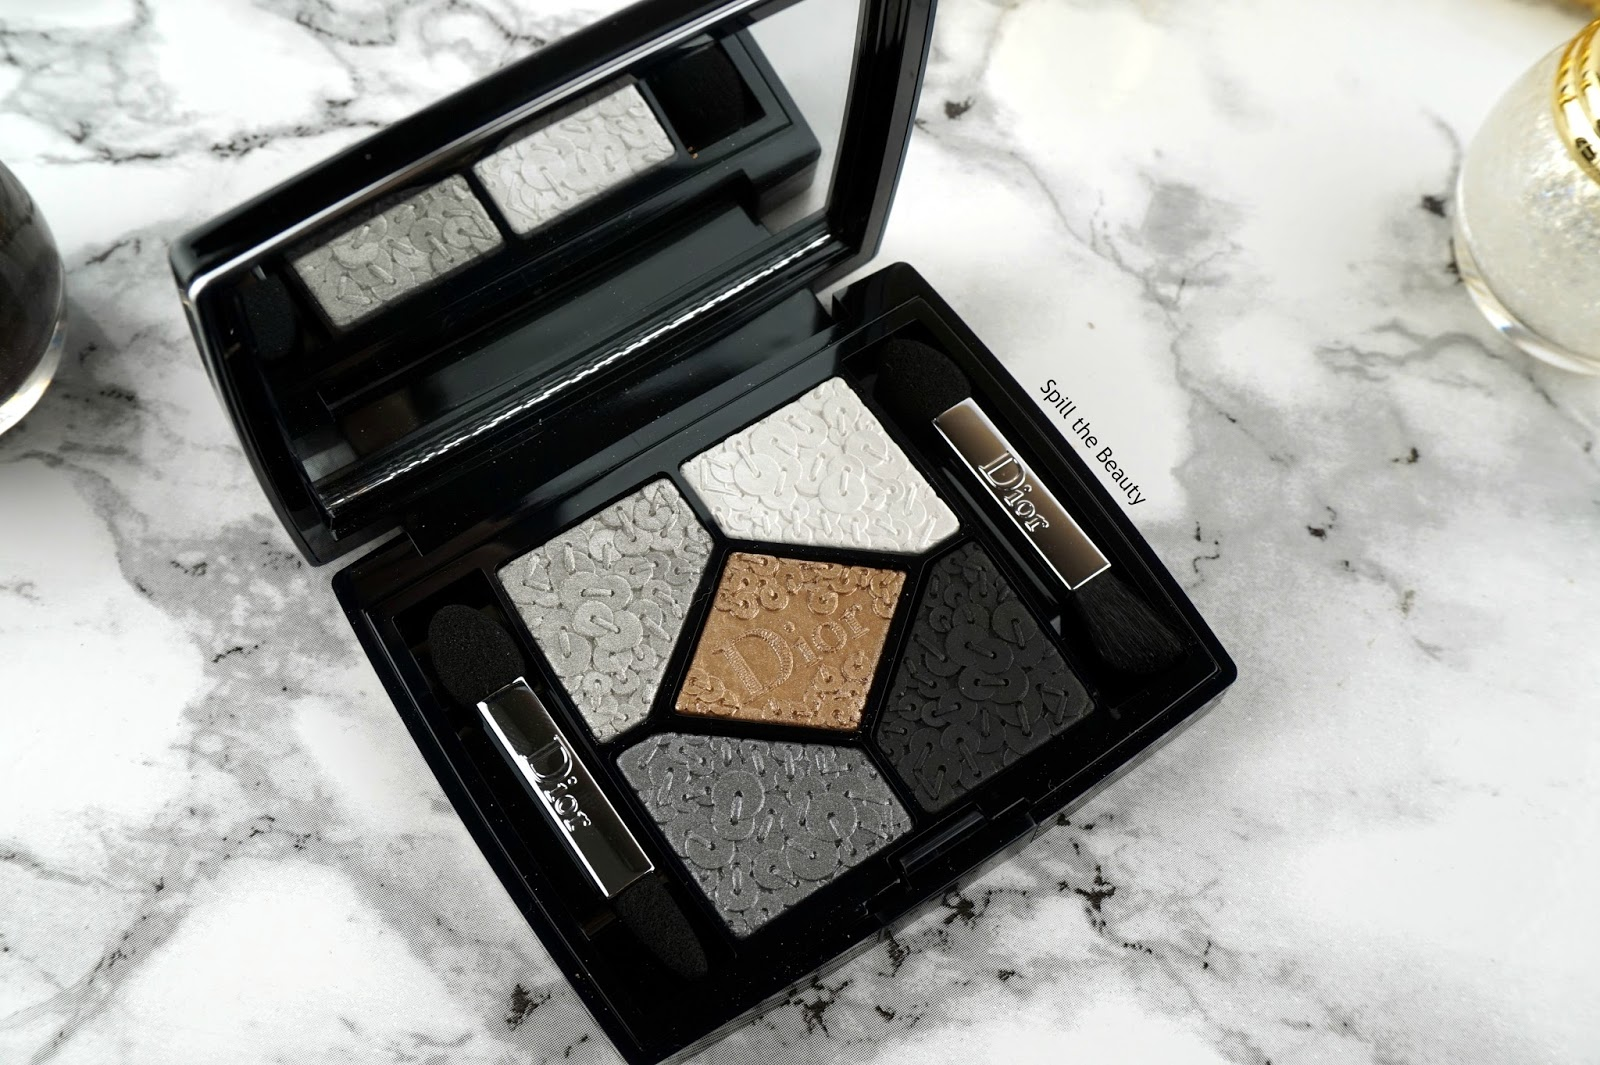 dior holiday makeup 2016 8 review swatch 5 couleurs splendor palette smoky sequins